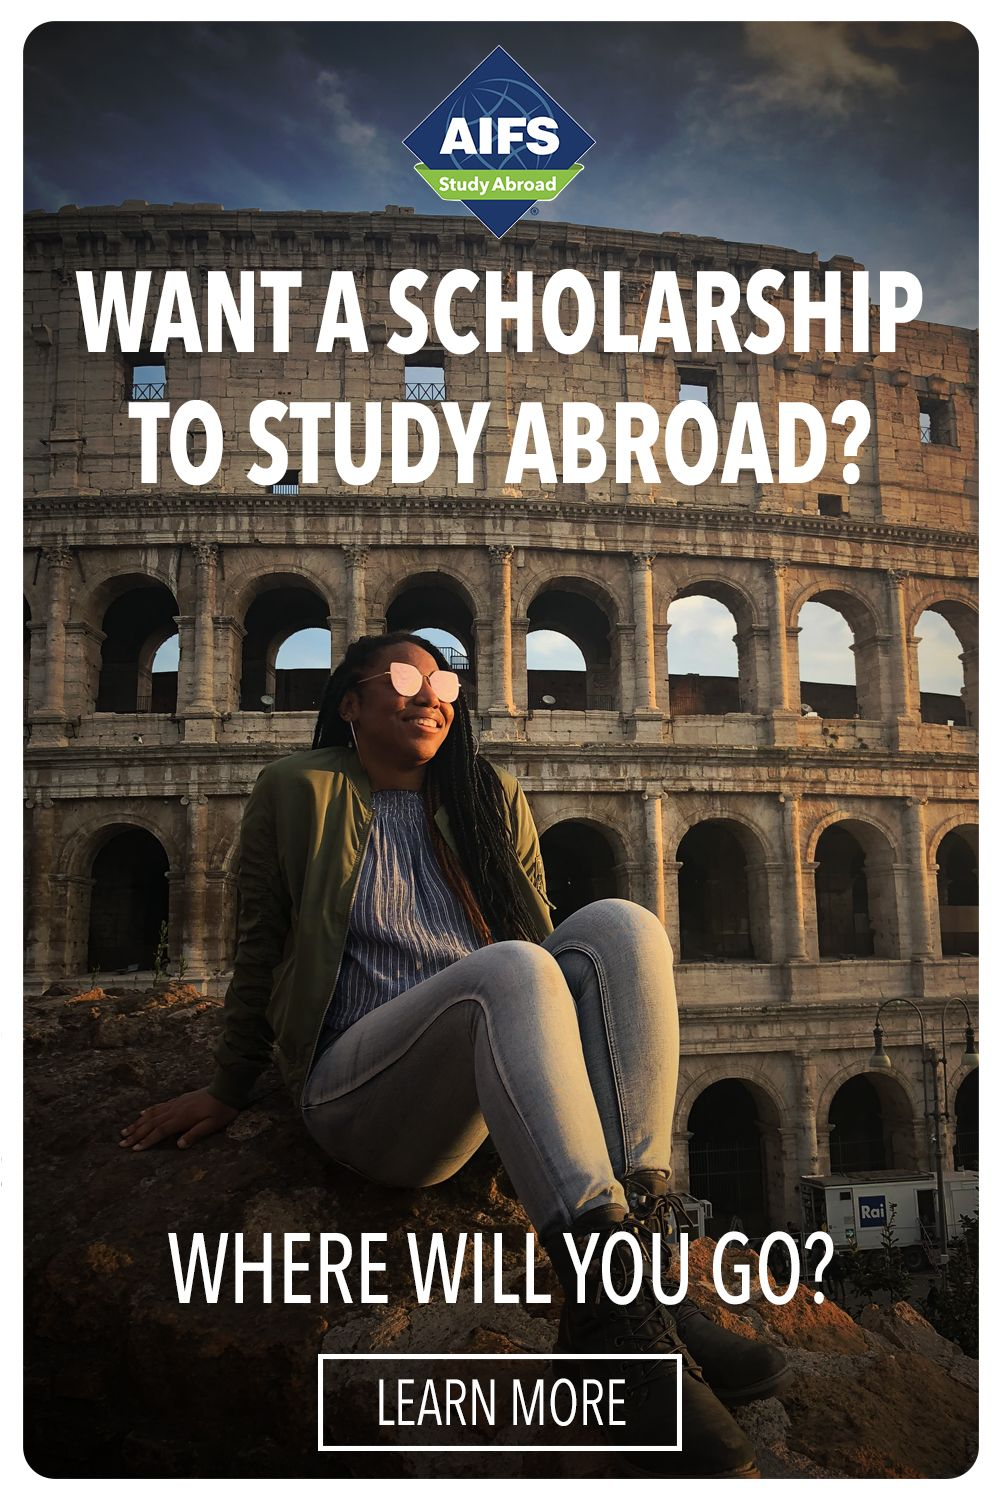 08cd3e058d586d0c5576c2981b9094fd - How Can I Get A Full Scholarship To Study Abroad